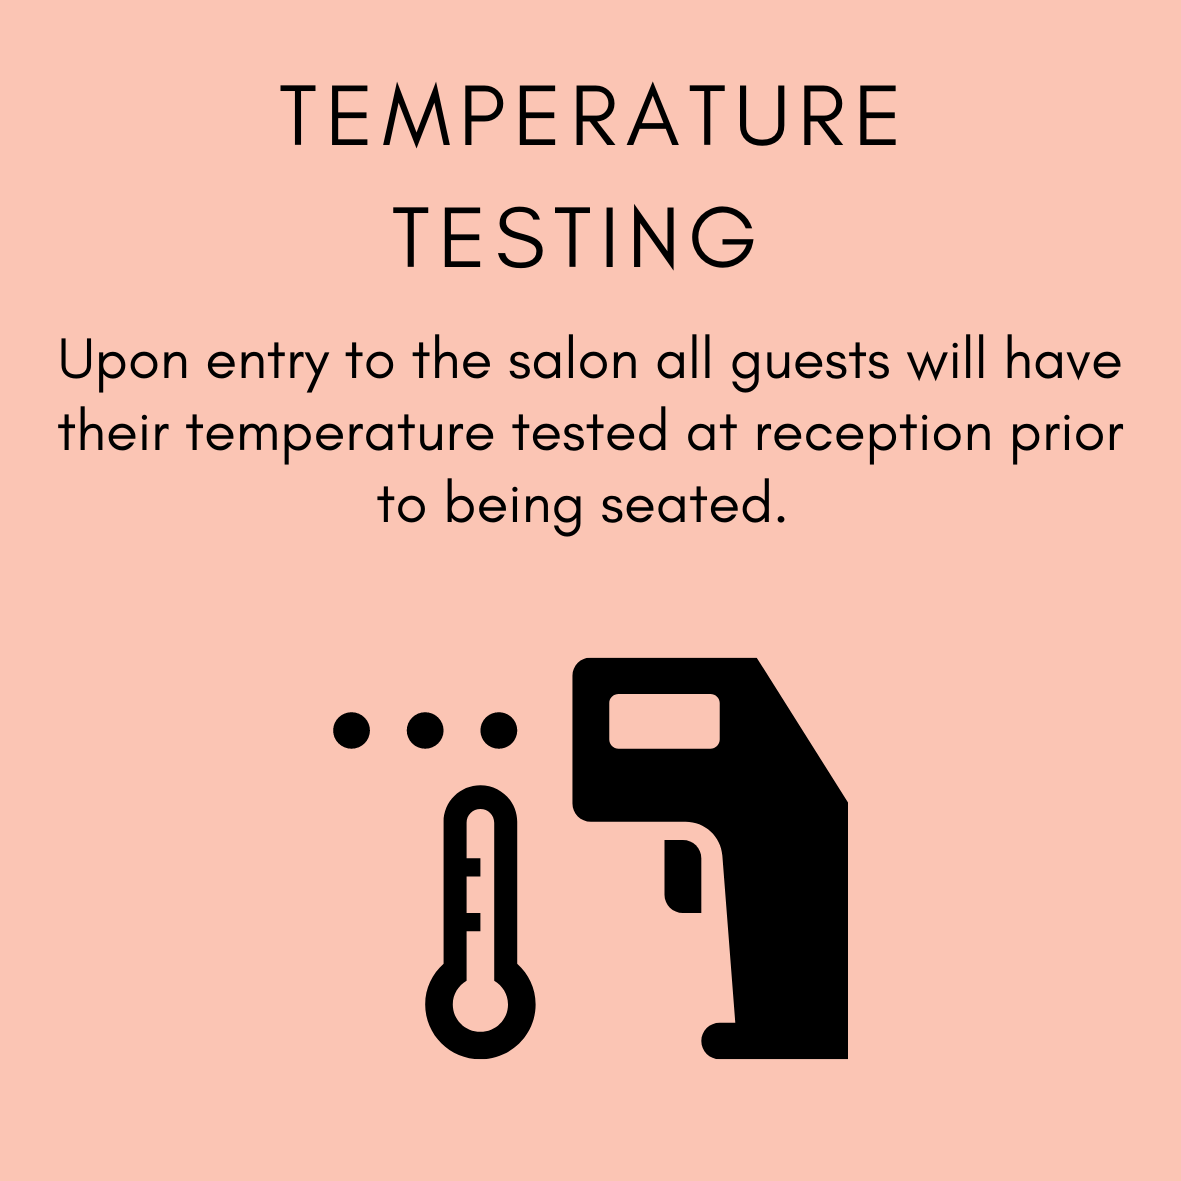 You will have your temperature taken before you sit down.